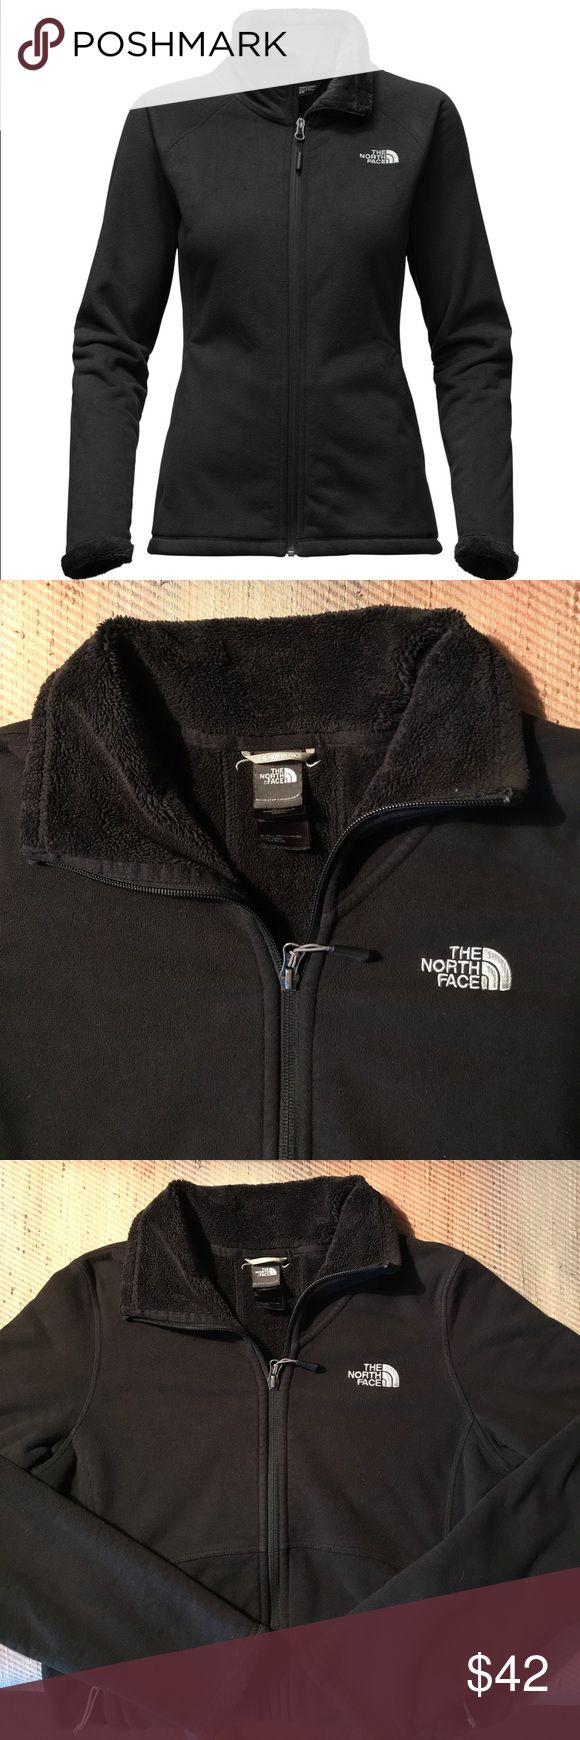 SALE! North Face fleeced lined small jacket In fabulous shape! It practically looks like the day I bought it. I've only worn it 4/5 times? No pilling. No fading. No stains. No snags. It practically looks new, see pictures! It is a full zip fleece lined jacket. The cuffs are super cute! Will trade for another Northface jacket in like condition in a size large or XL. Retails $99. Please see other listing for a sunny yellow Northface half zip sweatshirt in like new condition, size small, as…